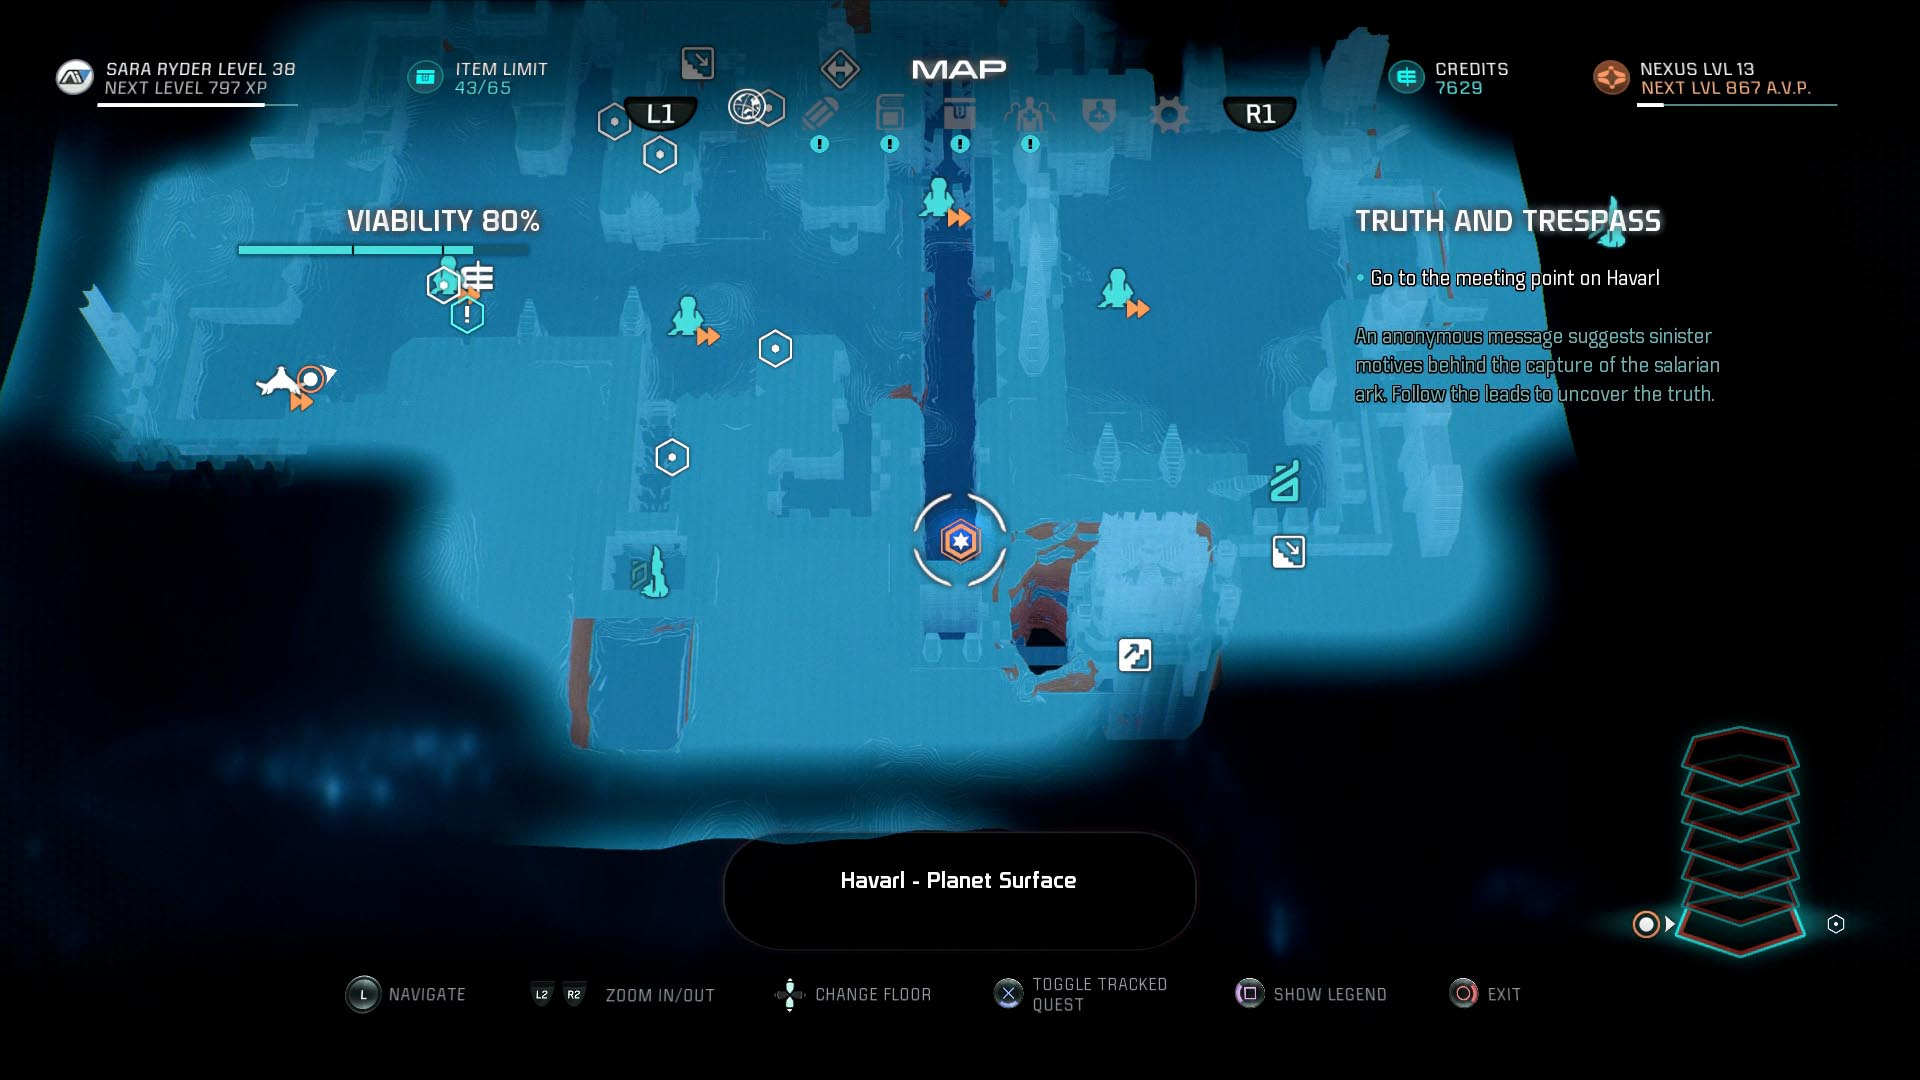 Mass Effect: Andromeda guide: Truth and Trespass allies and